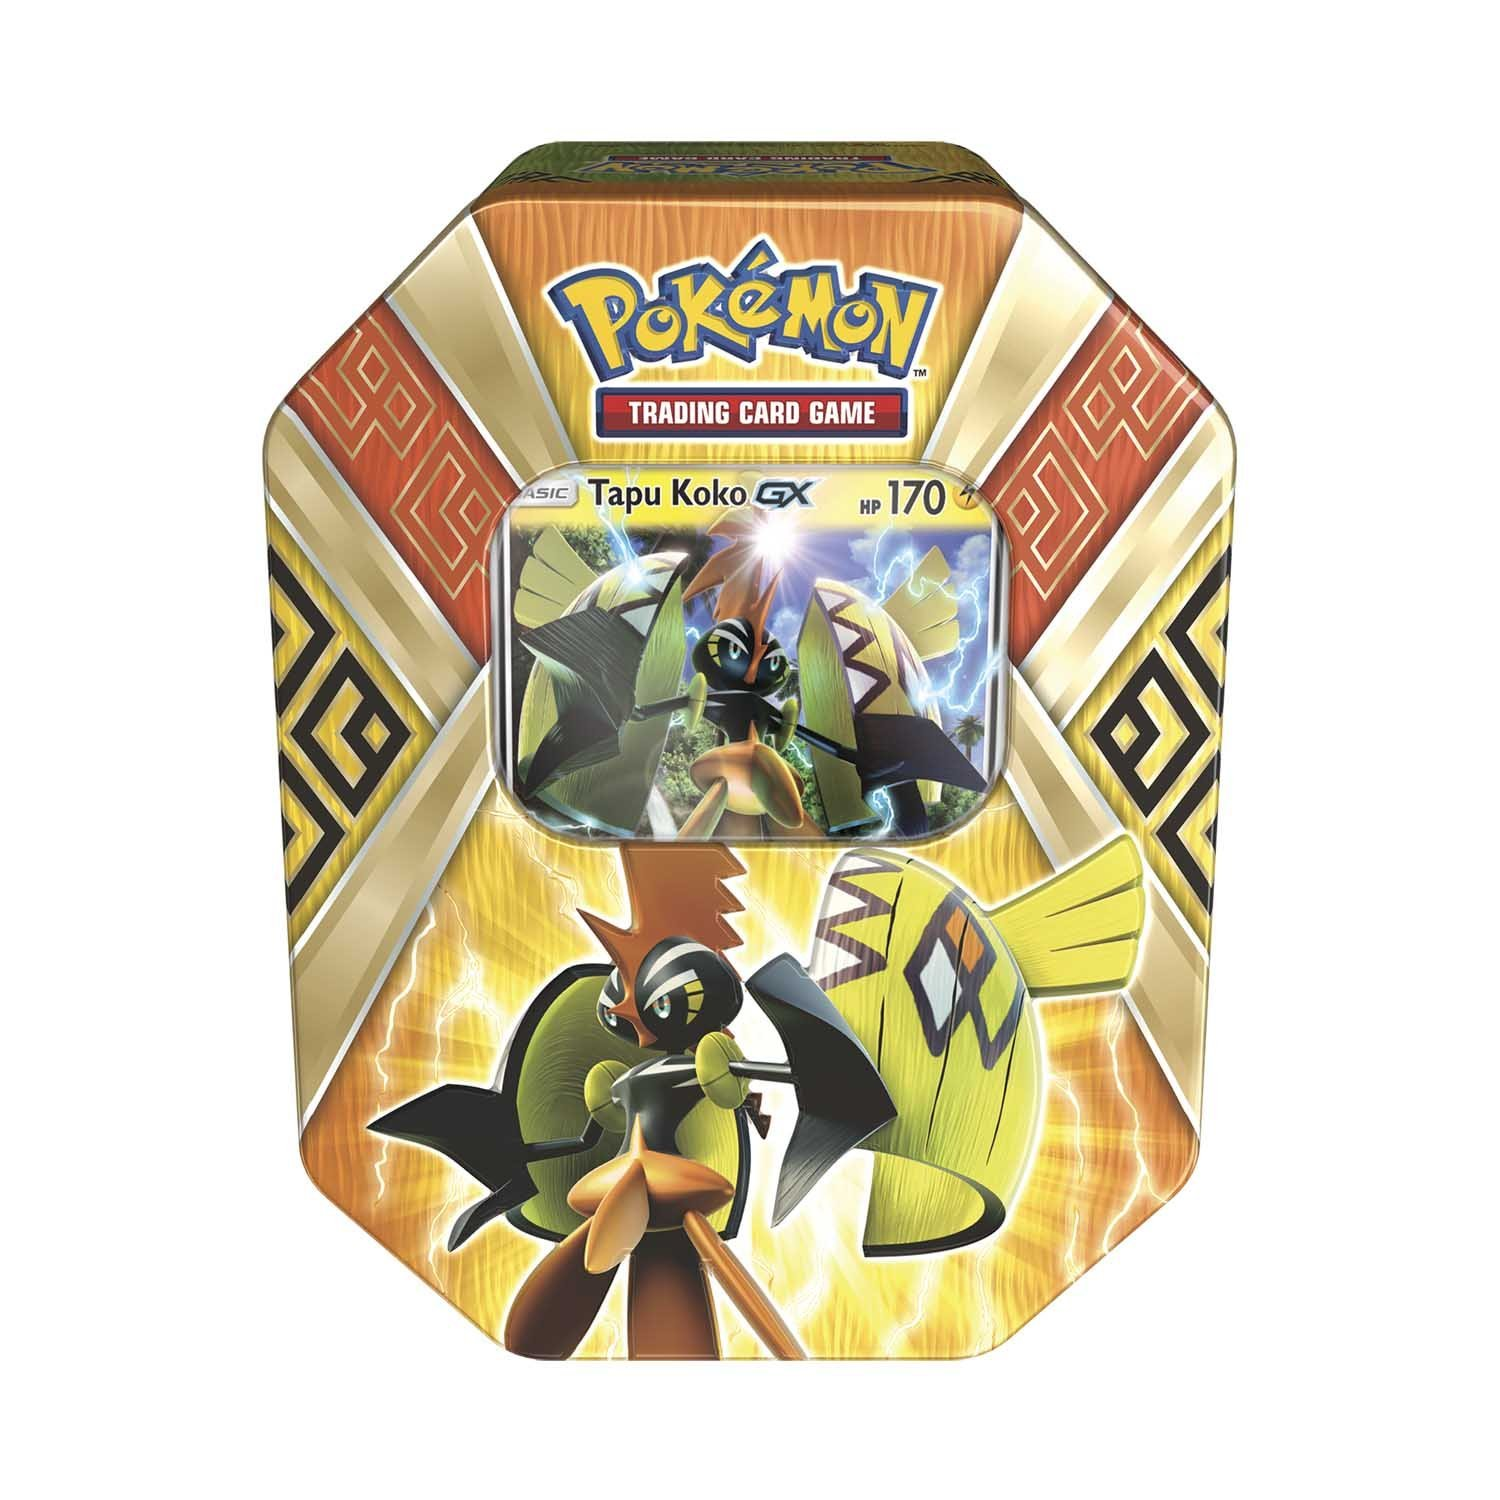 Pokemon Tcg Island Guardians Tin Card Game You Will Receive At Random A Tin Containing 1 Of 2 Foil Pokemon Gx Cards Tapu Koko Gx Or Tapu Bulu Gx By Pokmon Walmart Com Walmart Com